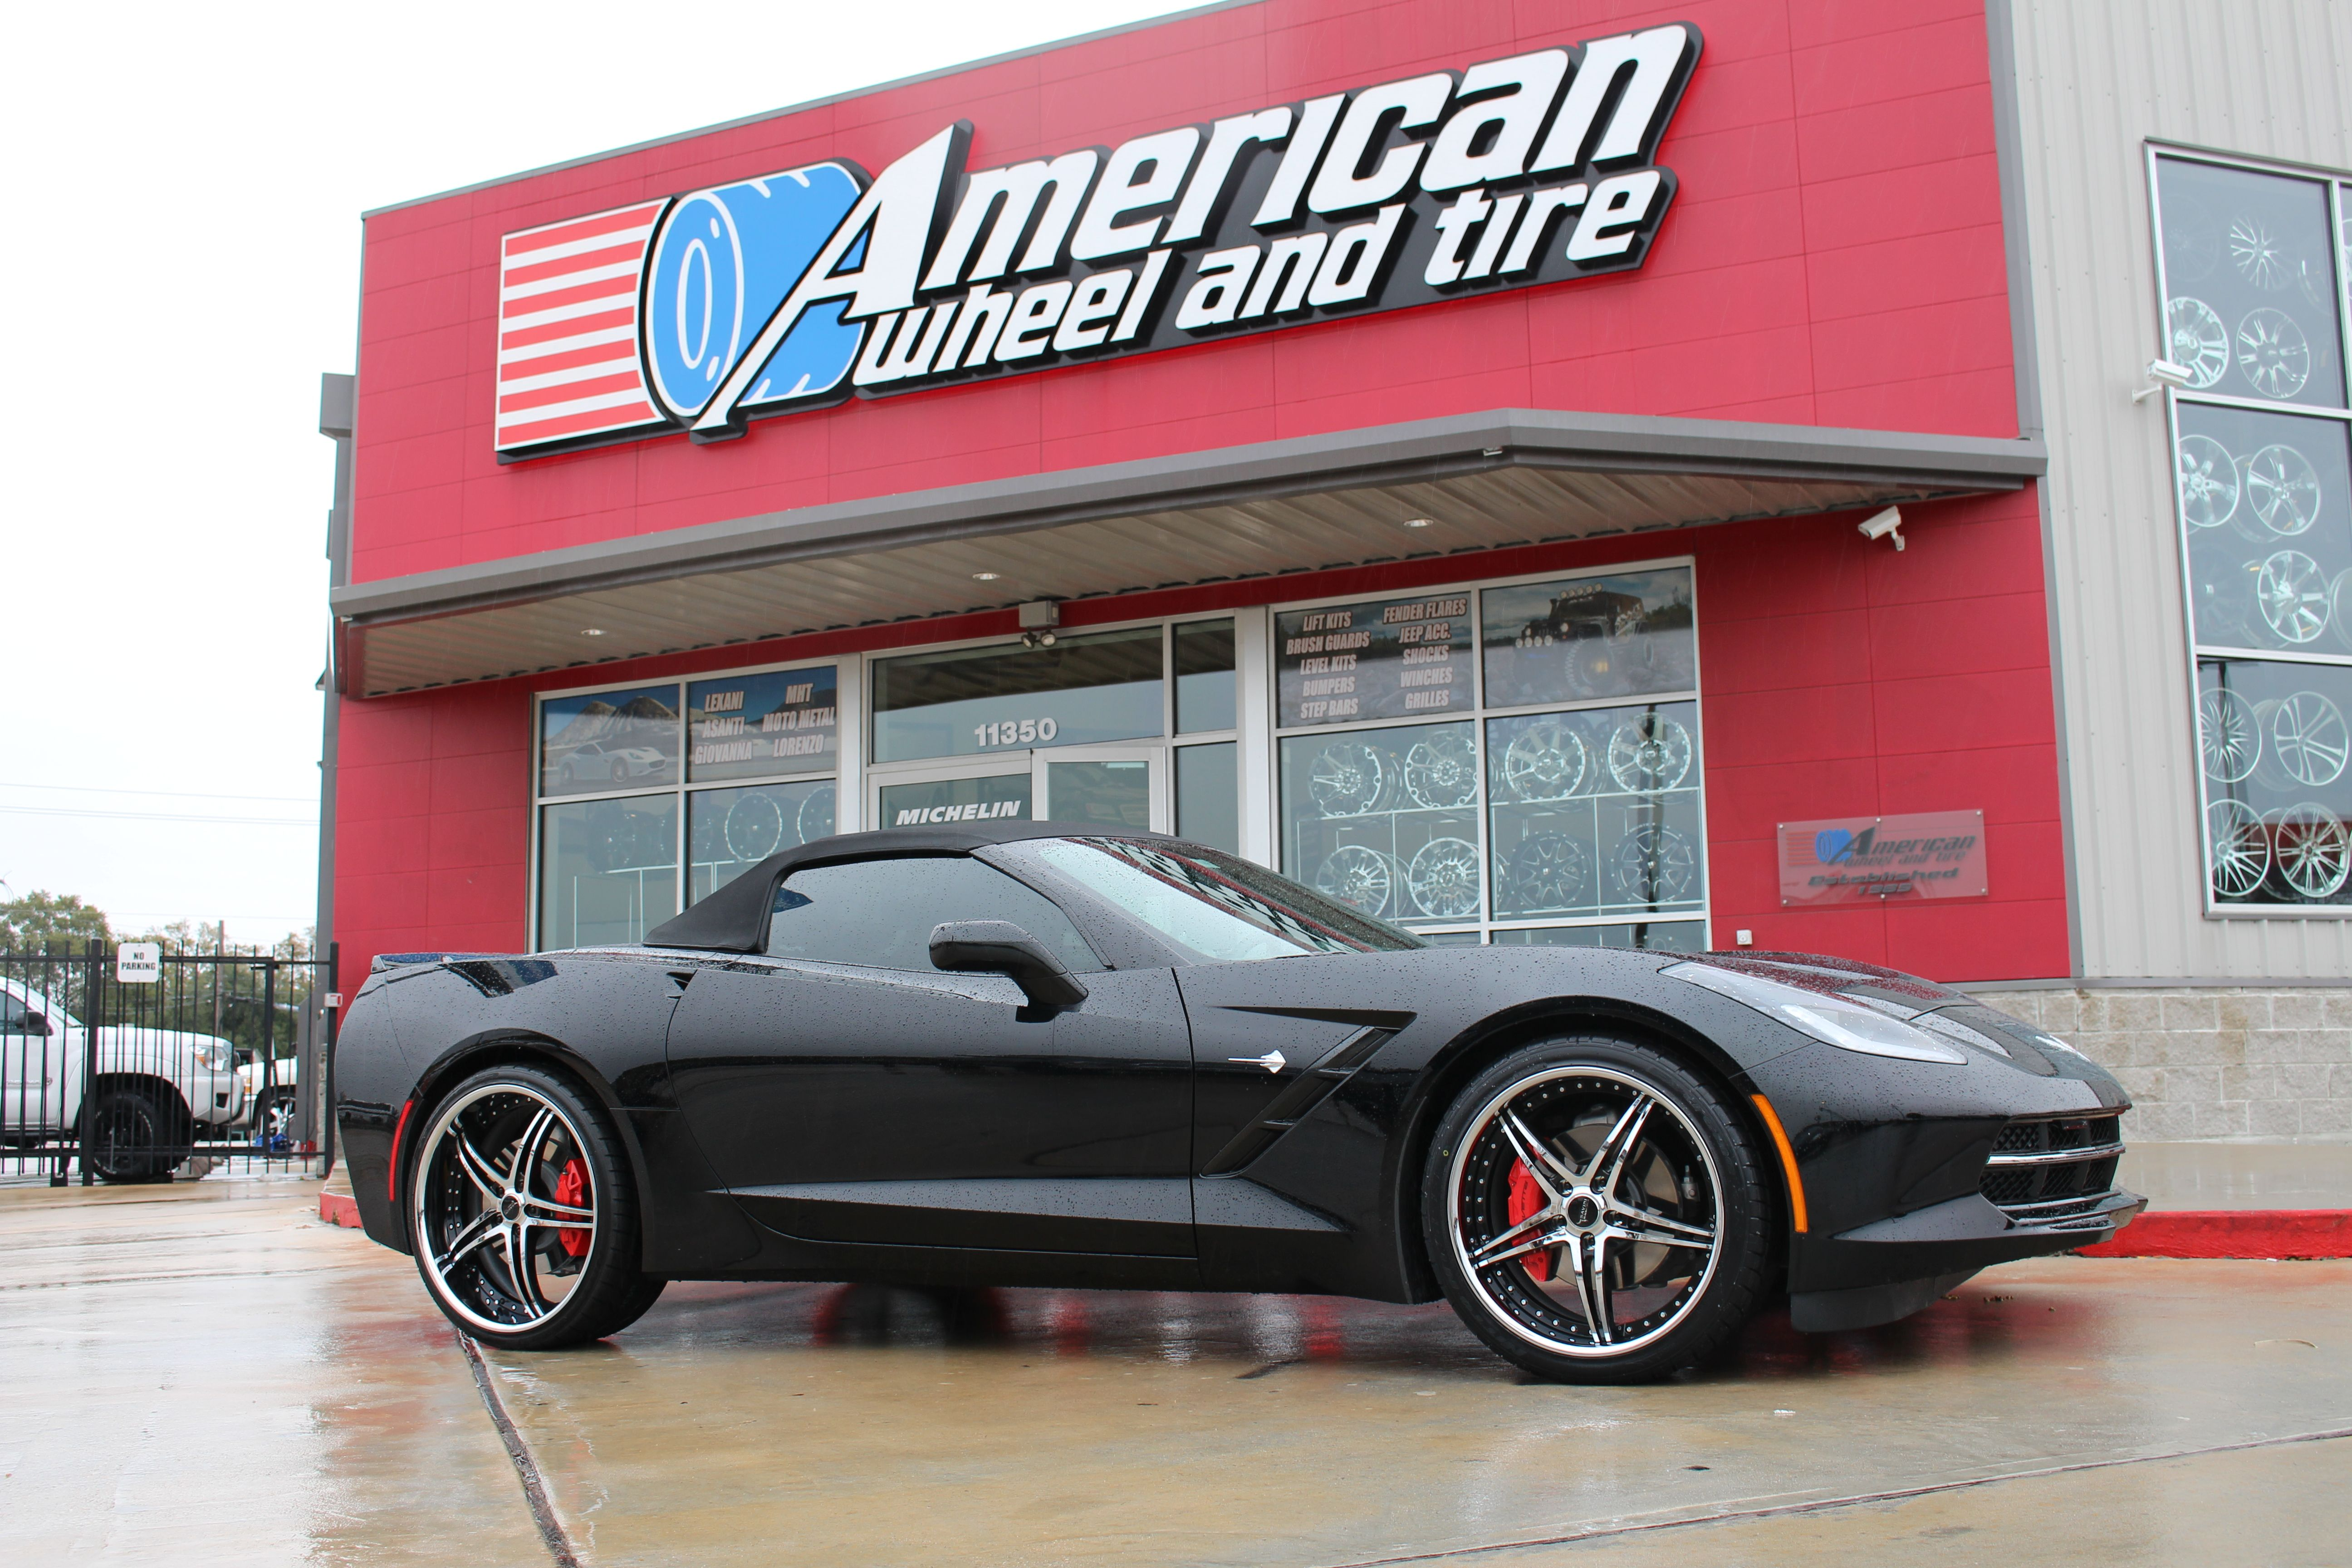 #SaviniBlackDiForza Wheels BS1 Two Piece in Custom Two Tone Chrome and Black on a #ChevroletCorvetteConvertible. 20x9 front with 255/35-20 and 22x10.5 rear with 295/25-22 #NittoNT555 tires. #Chevrolet #Corvette #SaviniWheels #Nitto - http://tinyurl.com/Savini-Black-Di-Forza